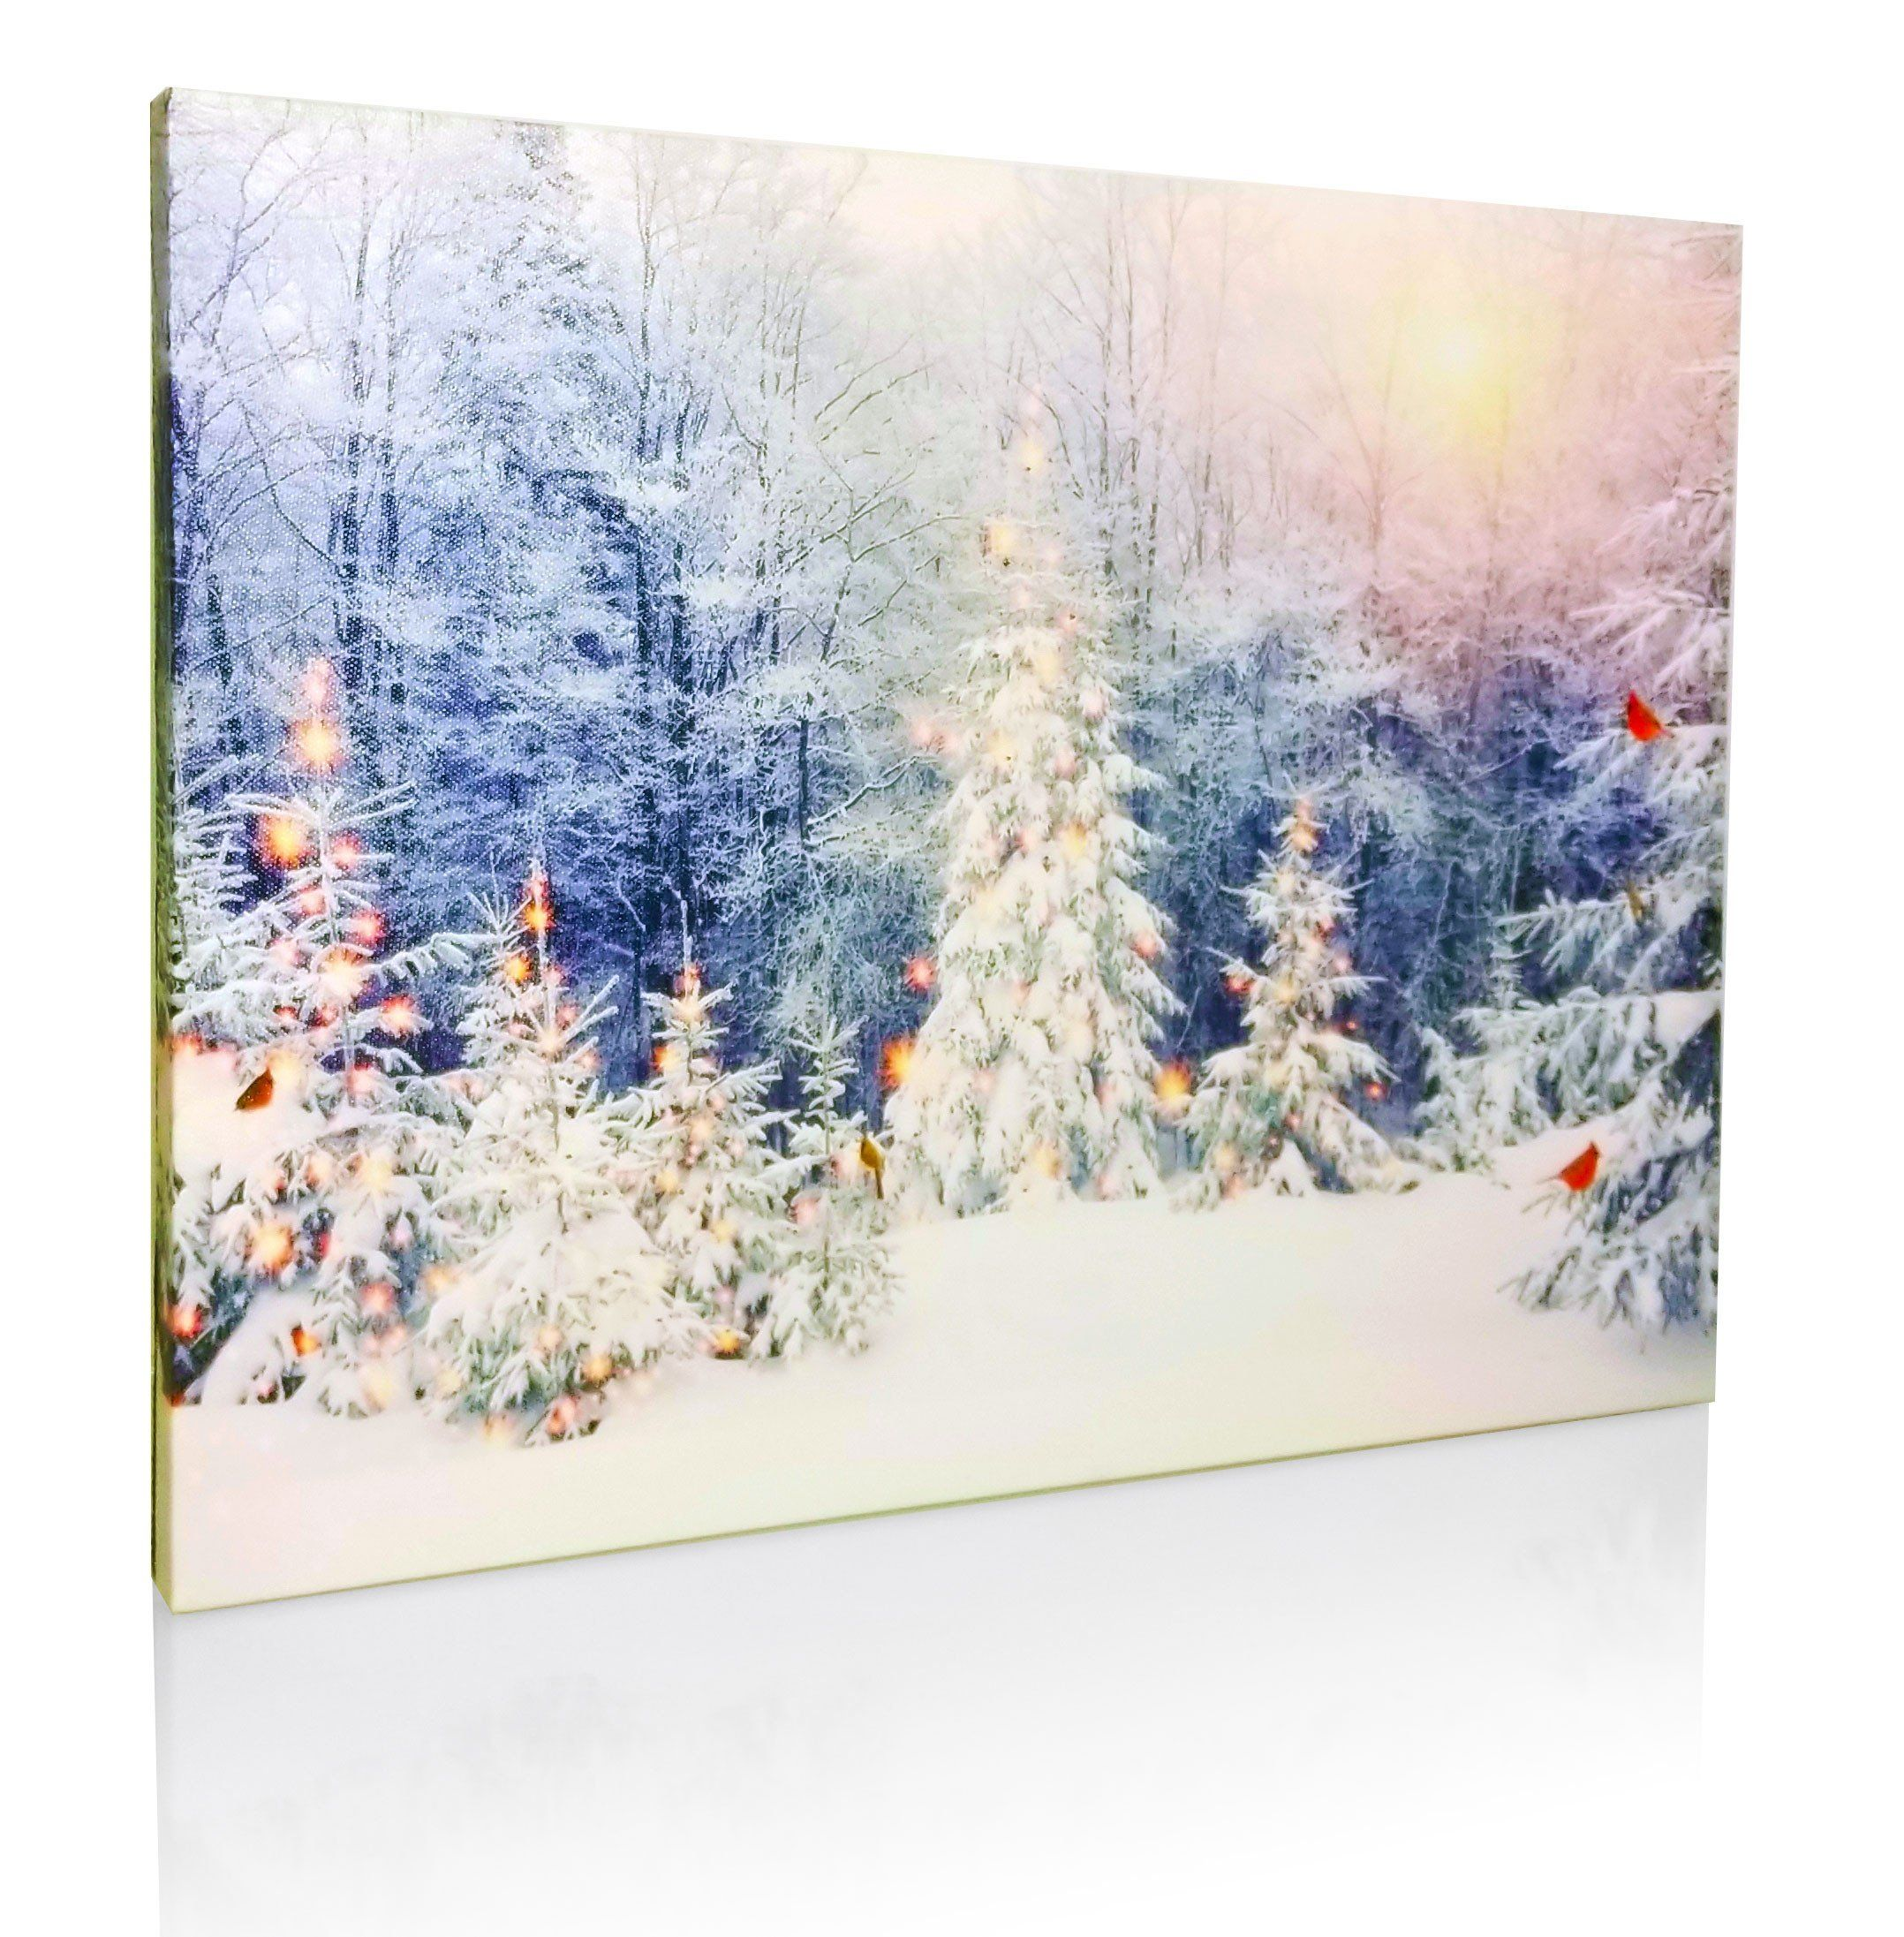 Winter Scene Canvas Print Led Light Up Print With Red Cardinals And Snowy White Christmas Trees White Christmas Trees Colorful Christmas Tree Winter Scenes